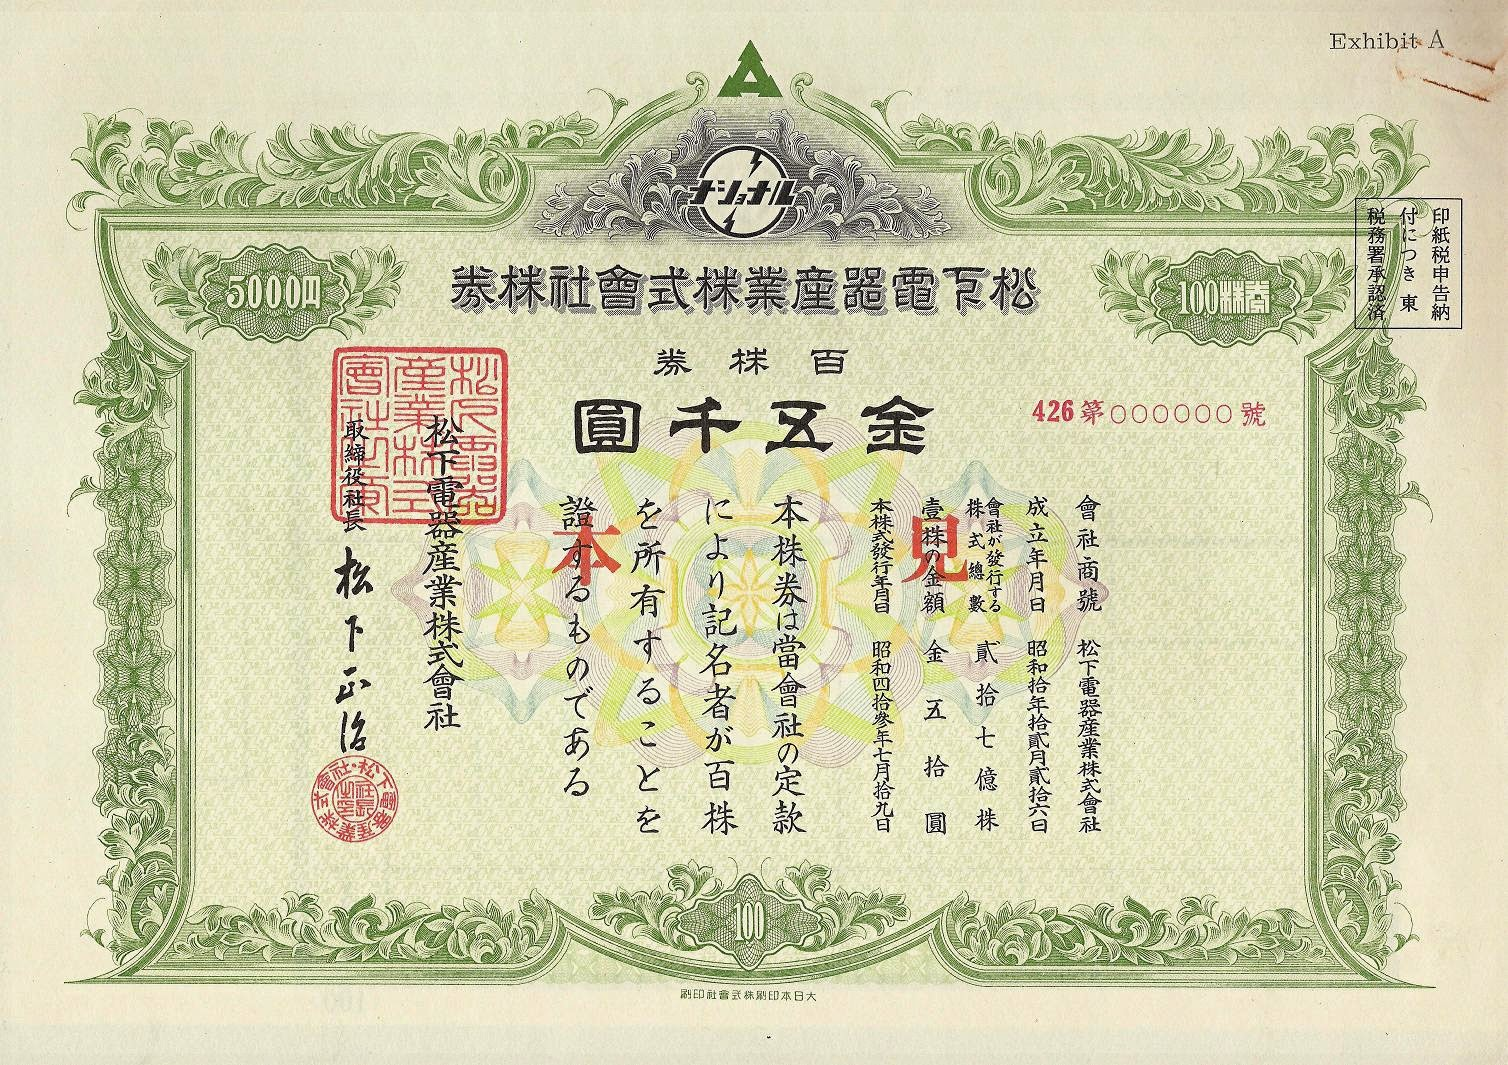 share certificate of the Matsushita Electric Industrial Co., Ltd (Panasonic)